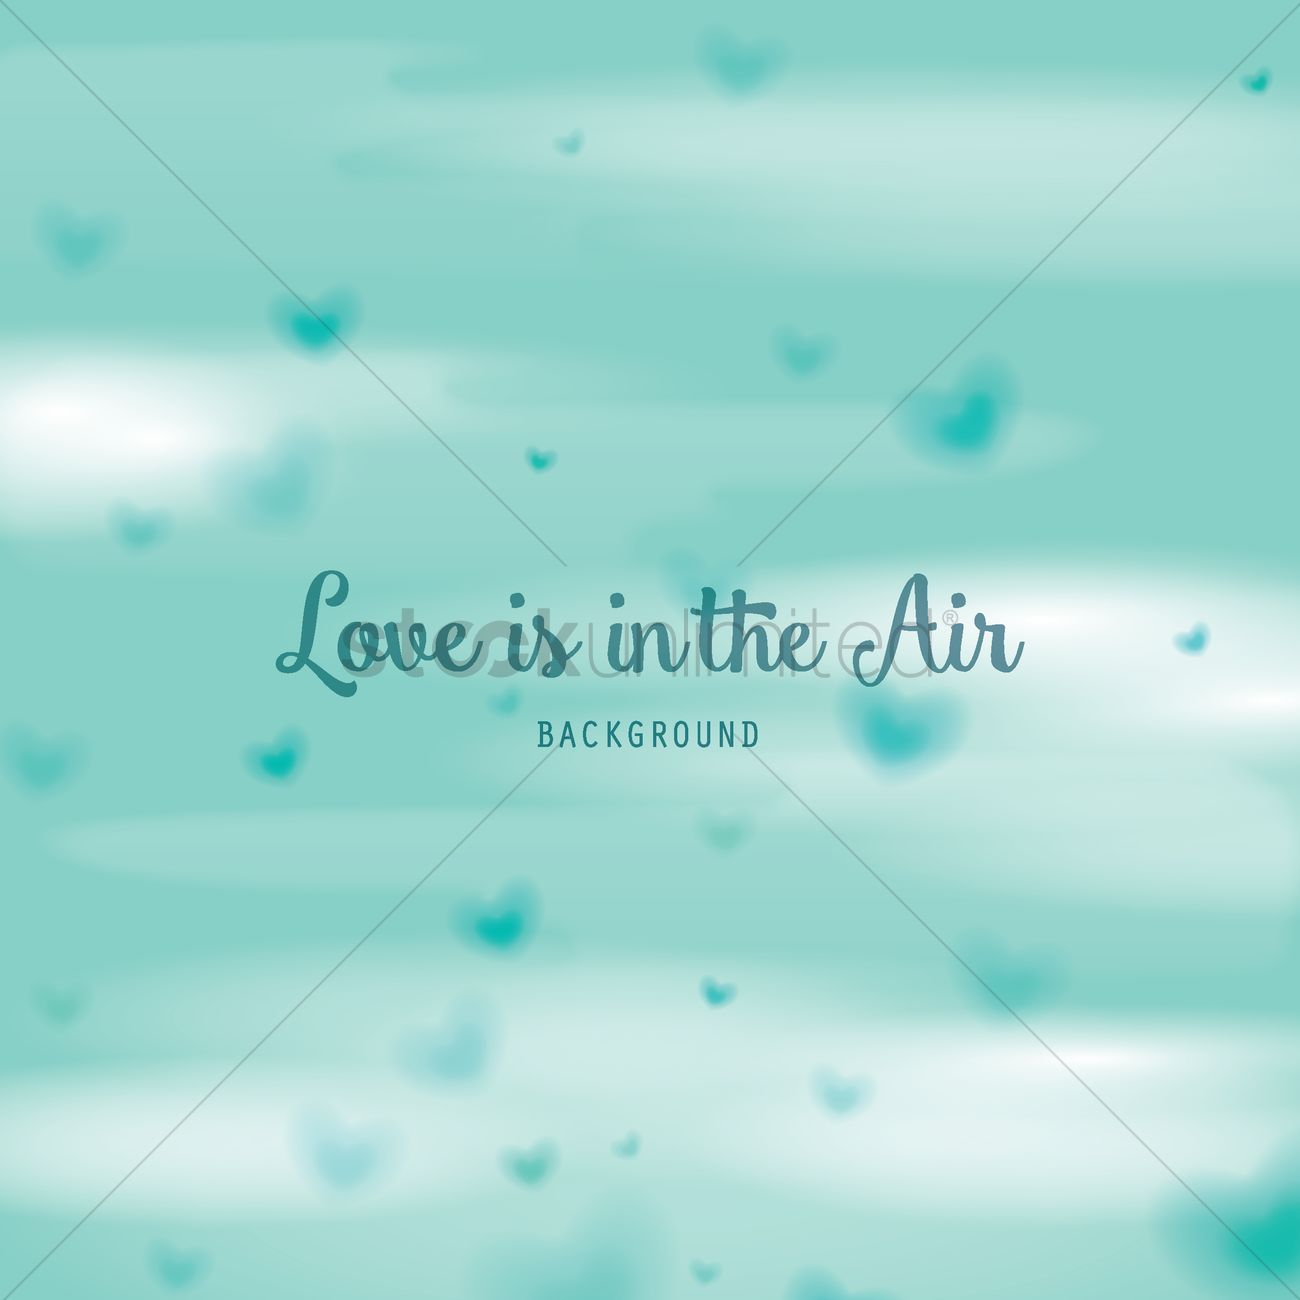 Love Is In The Air Background Vector Image 1799995 Stockunlimited